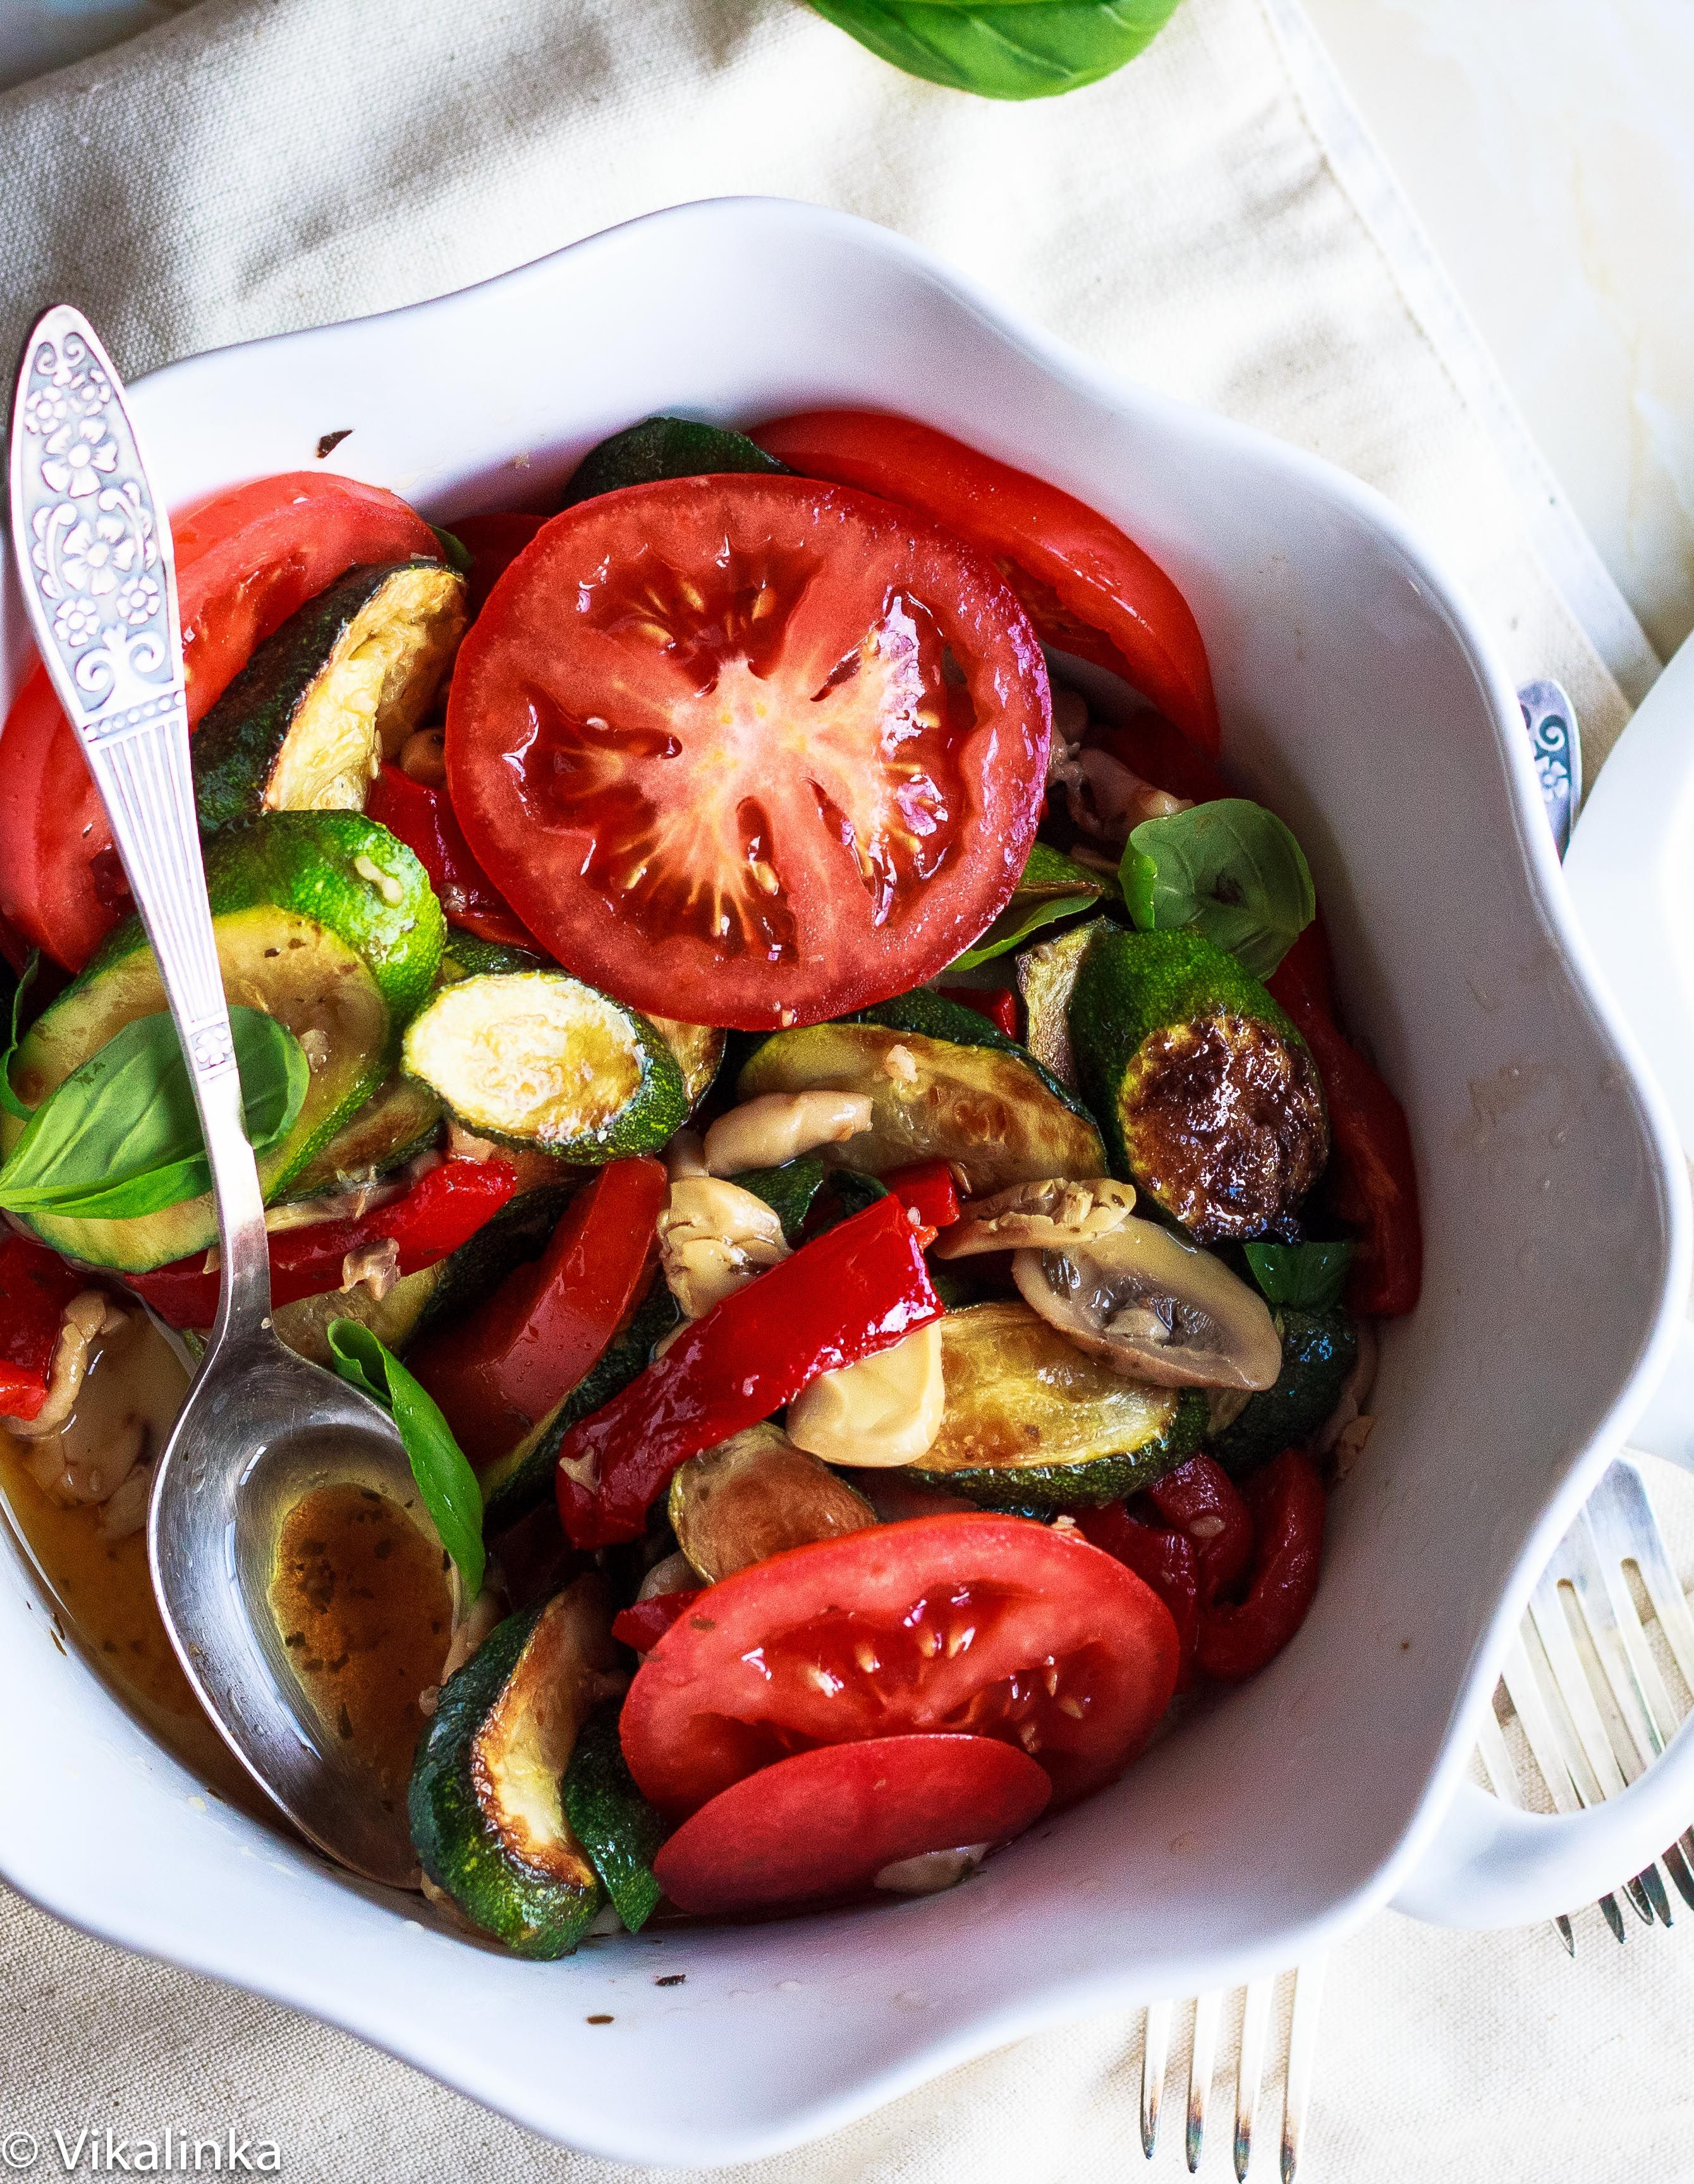 Warm Zucchini Salad with Balsamic and Basil Vinaigrette. . This salad is perfect for cold winter months and a welcome break from the usual tossed lettuce.